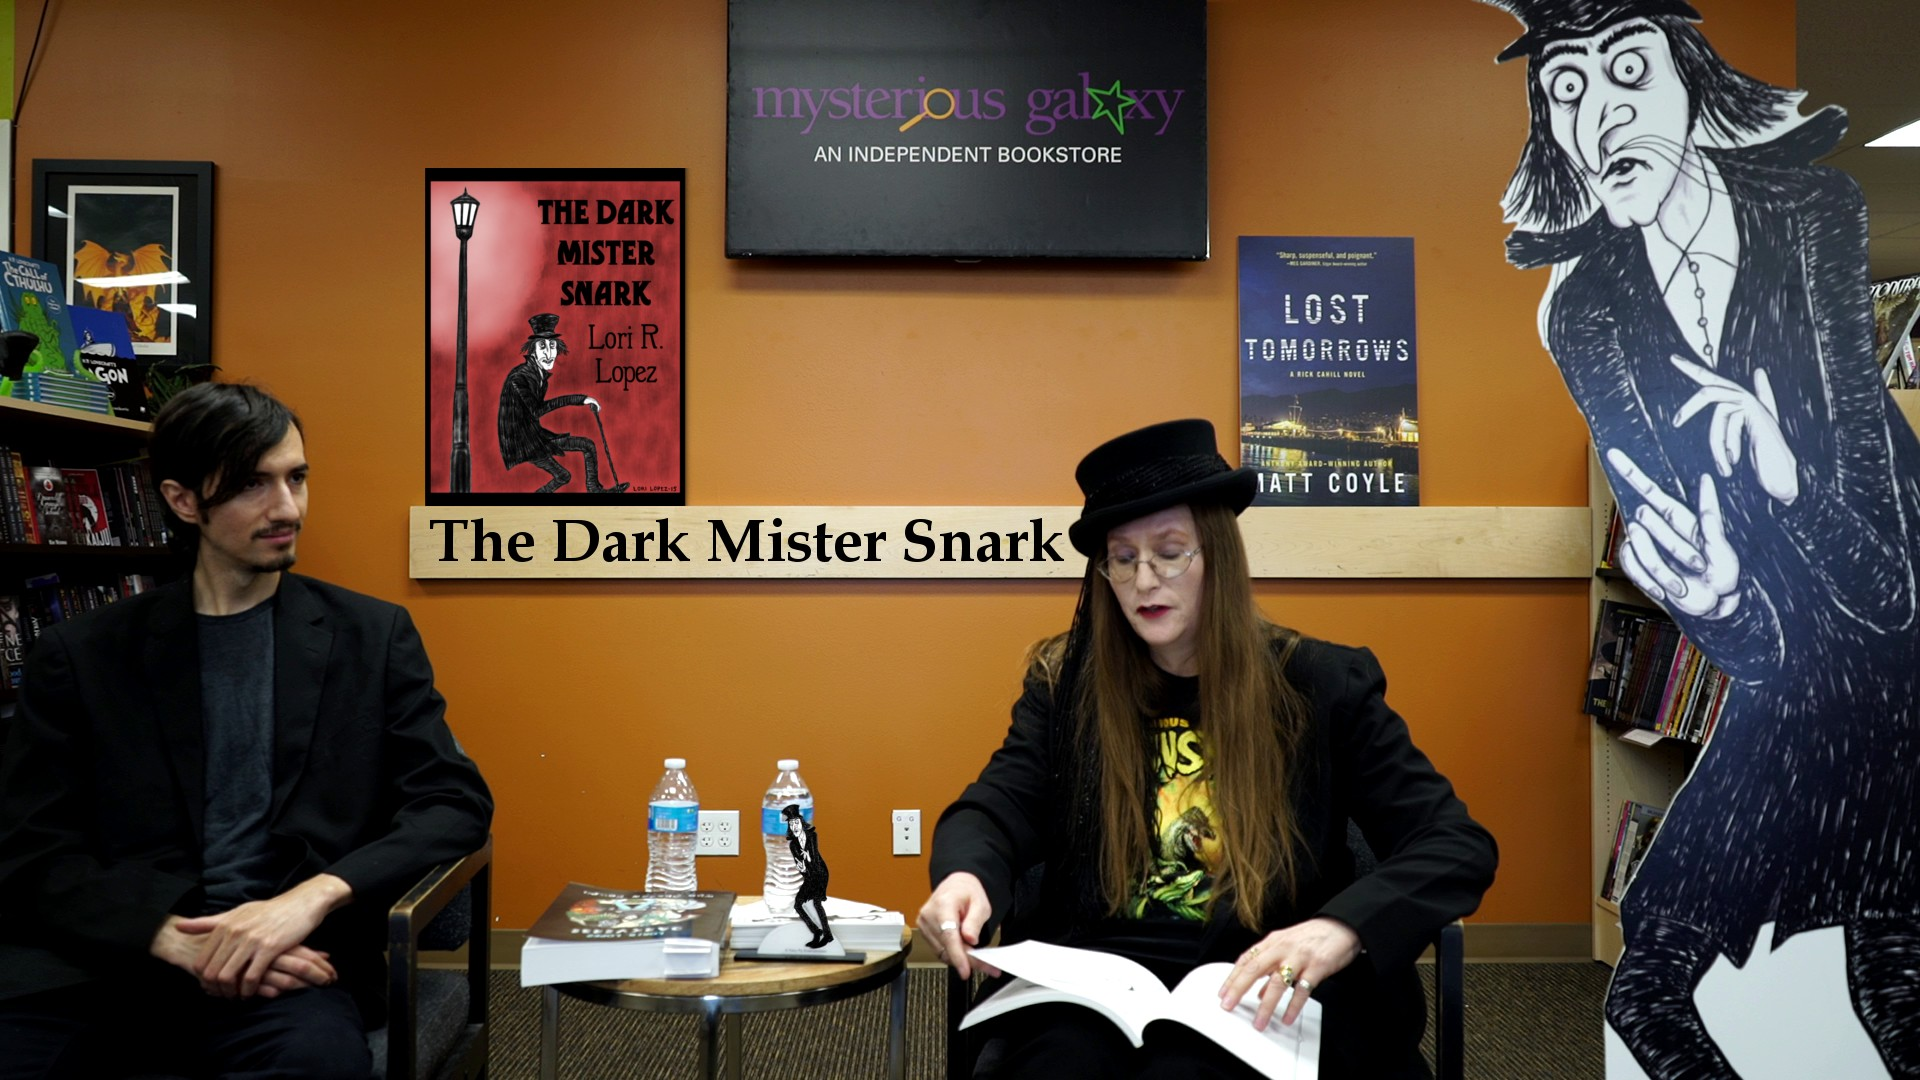 Lori R. Lopez Reading And Presentation At Mysterious Galaxy Bookstore With The Dark Mister Snark